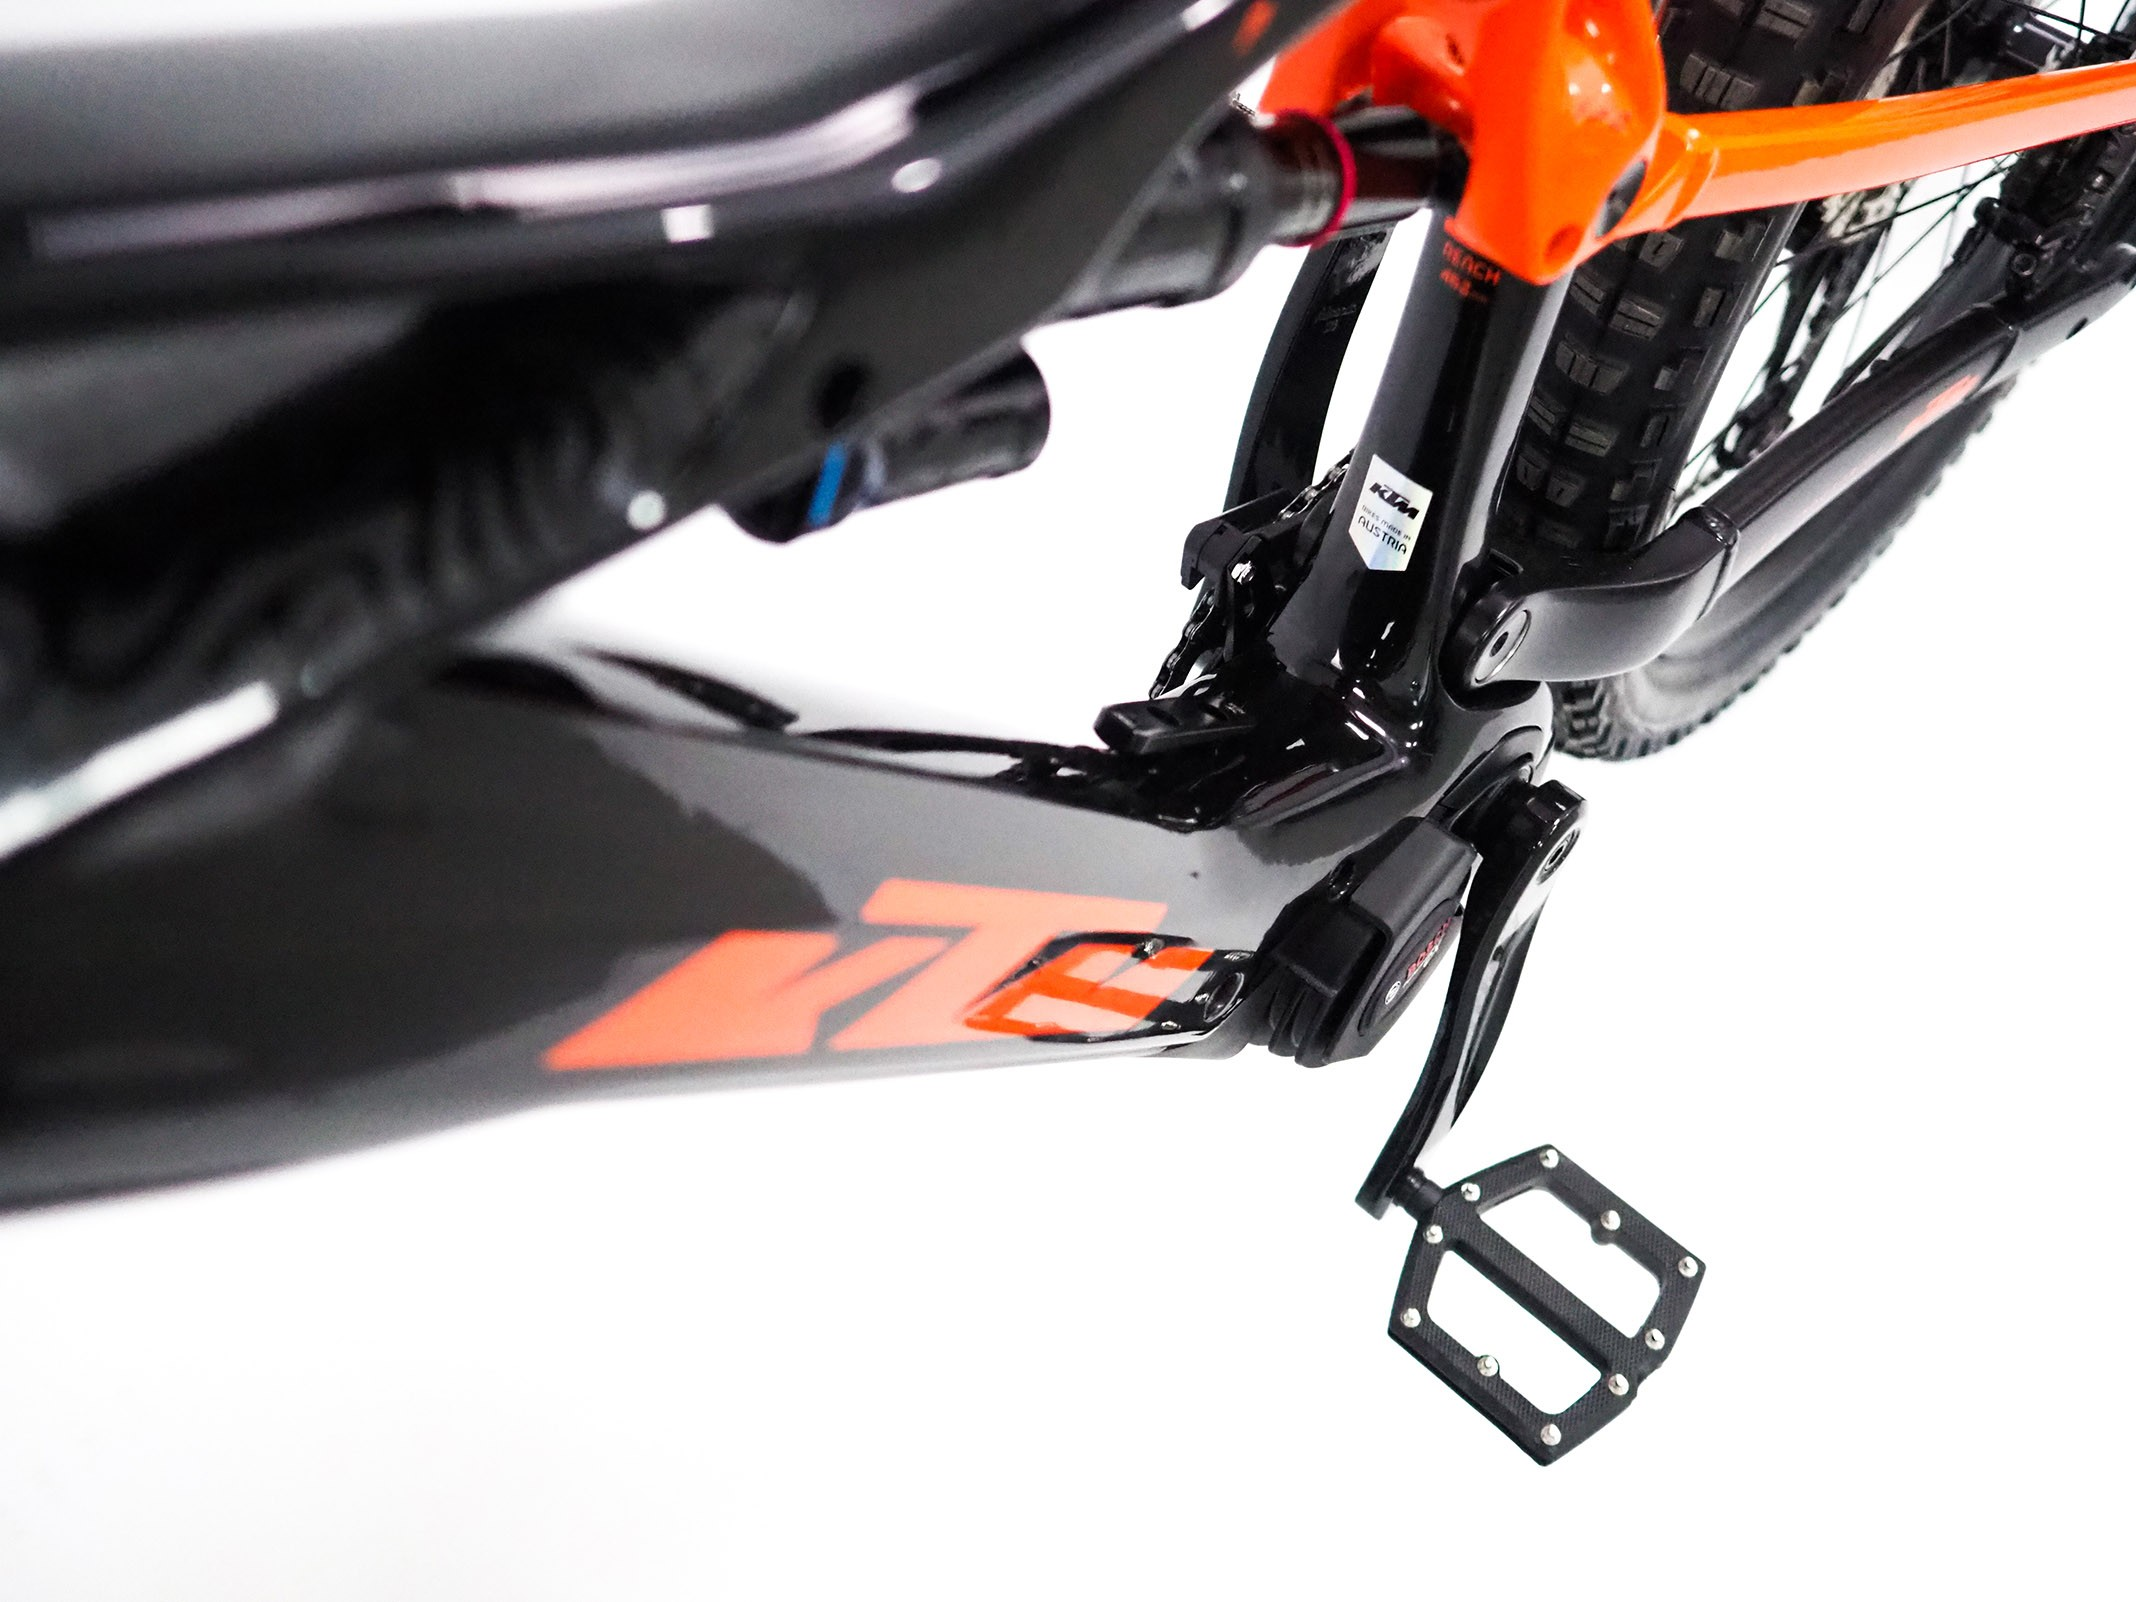 https://w8w5m3f8.stackpathcdn.com/22831-thickbox_extralarge/vtt-electrique-ktm-macina-prowler-master.jpg